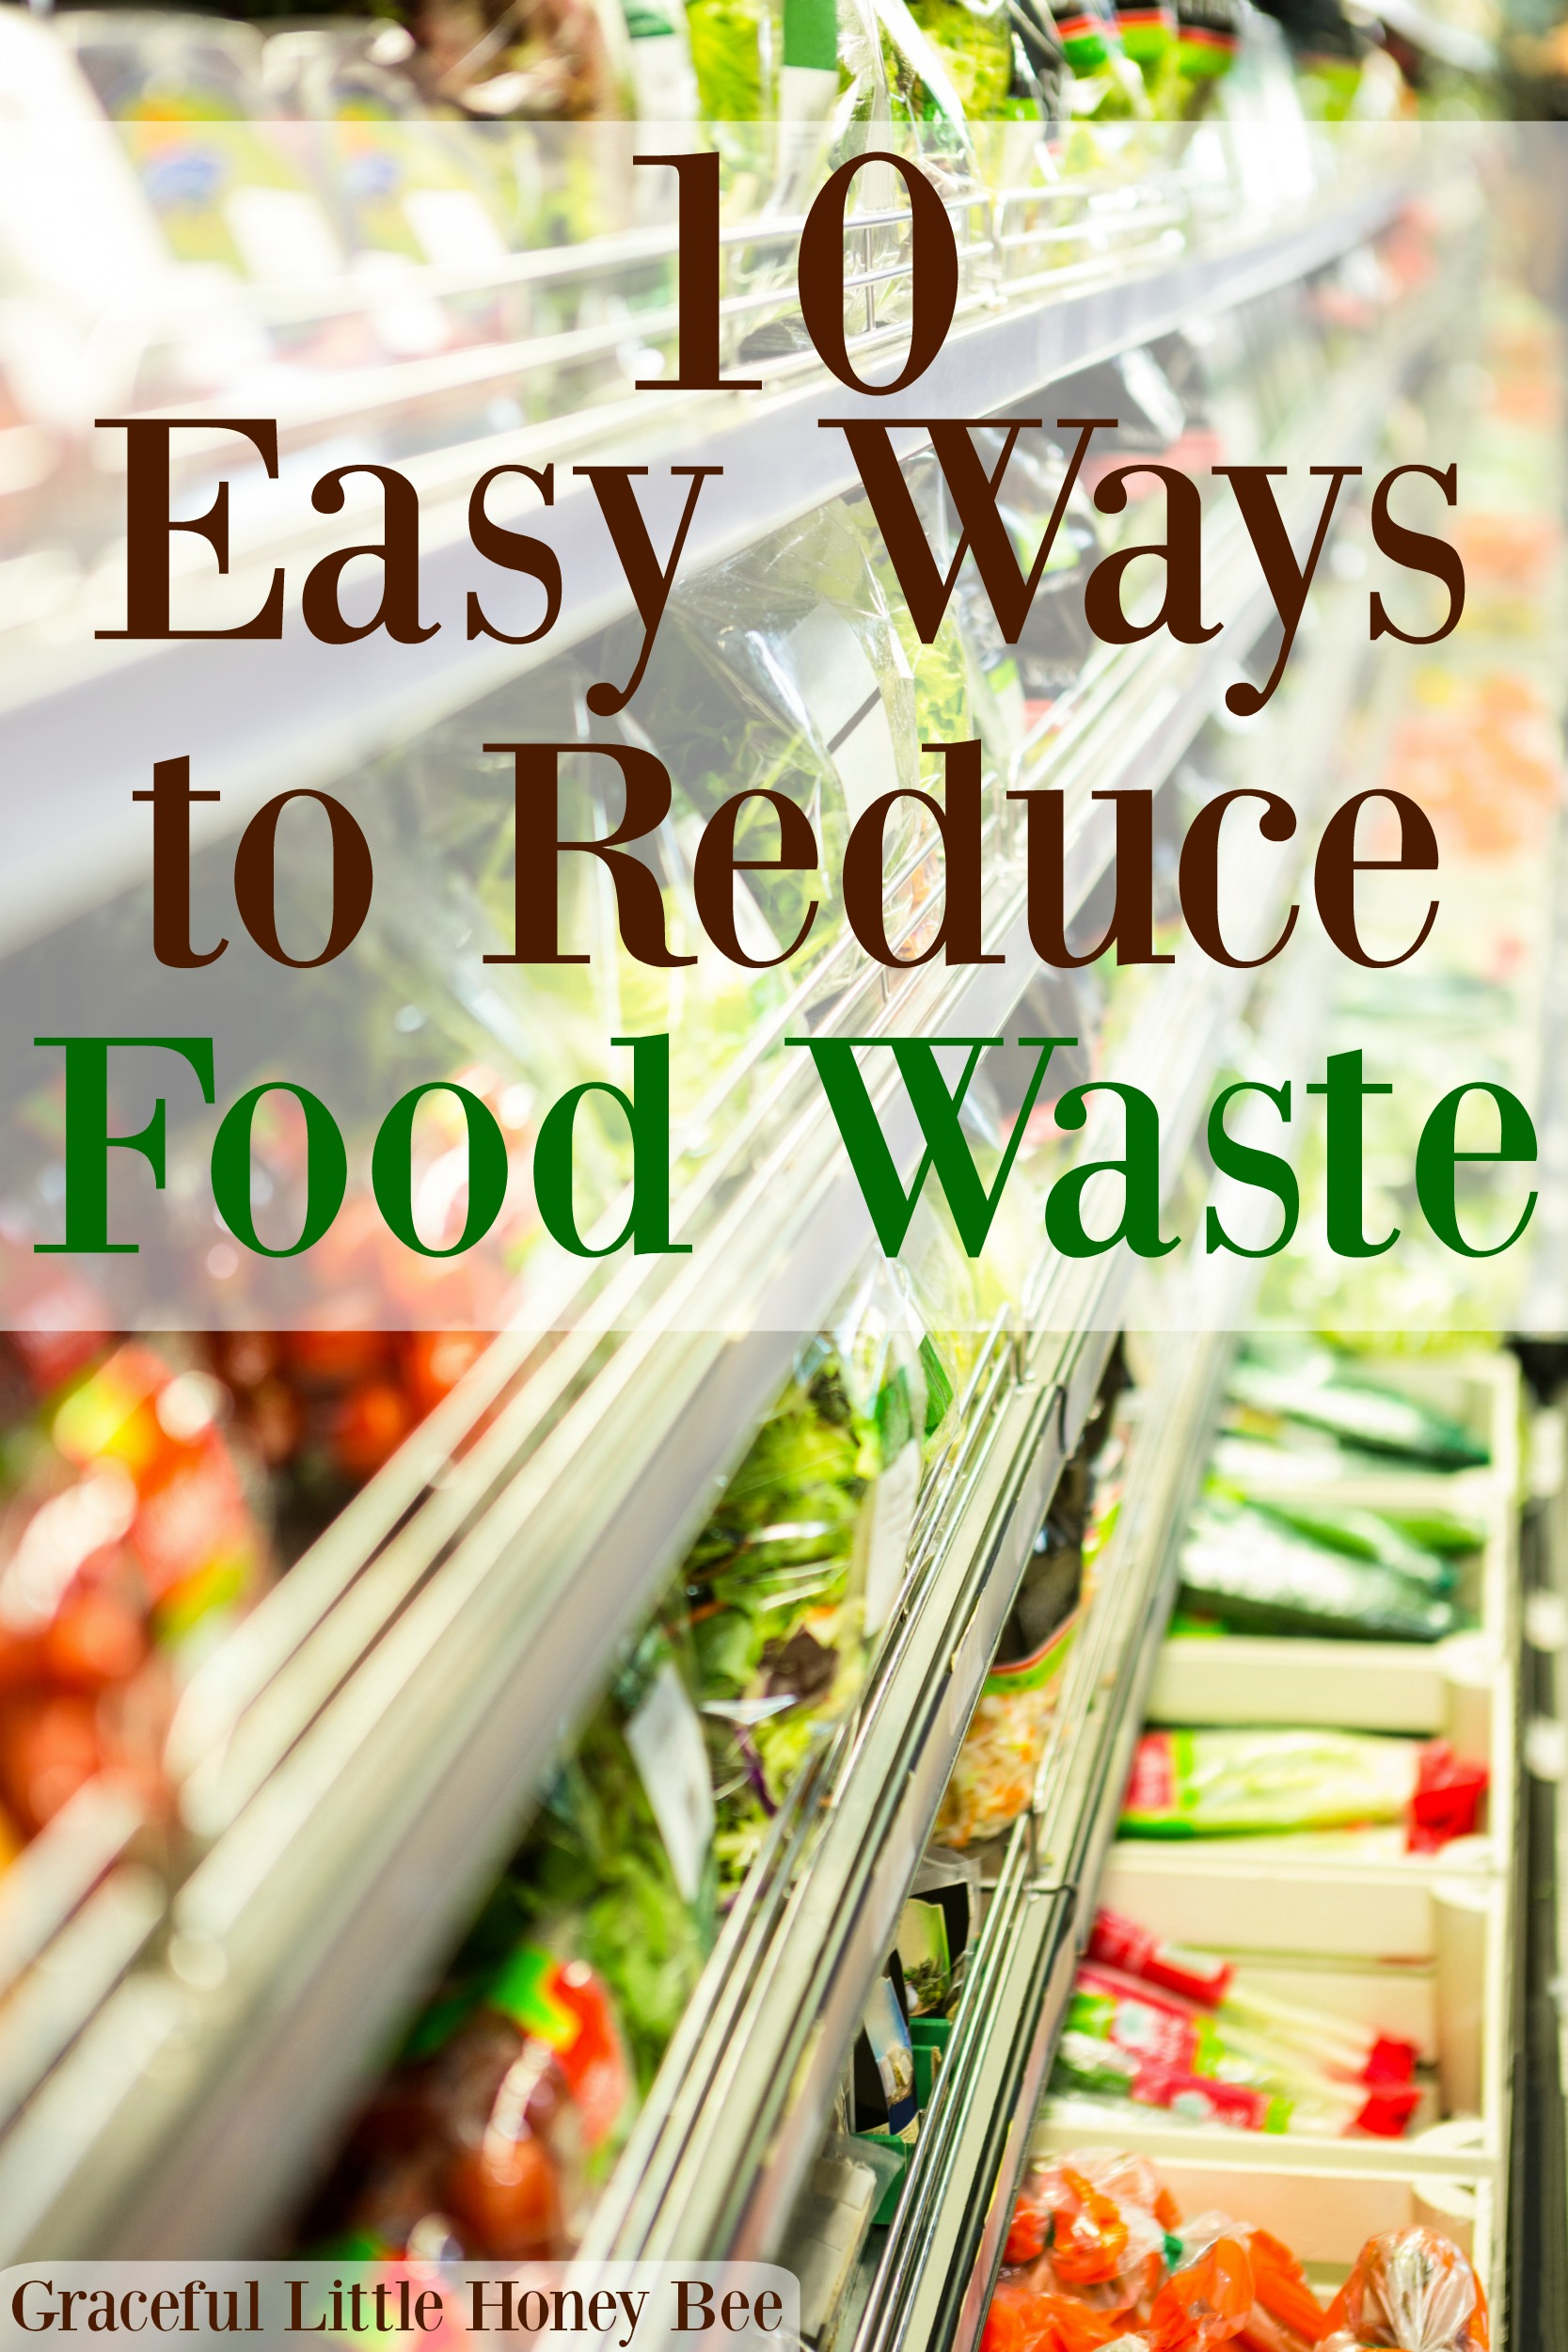 Ways To Read Tarot Cards: 10 Ways To Reduce Food Waste